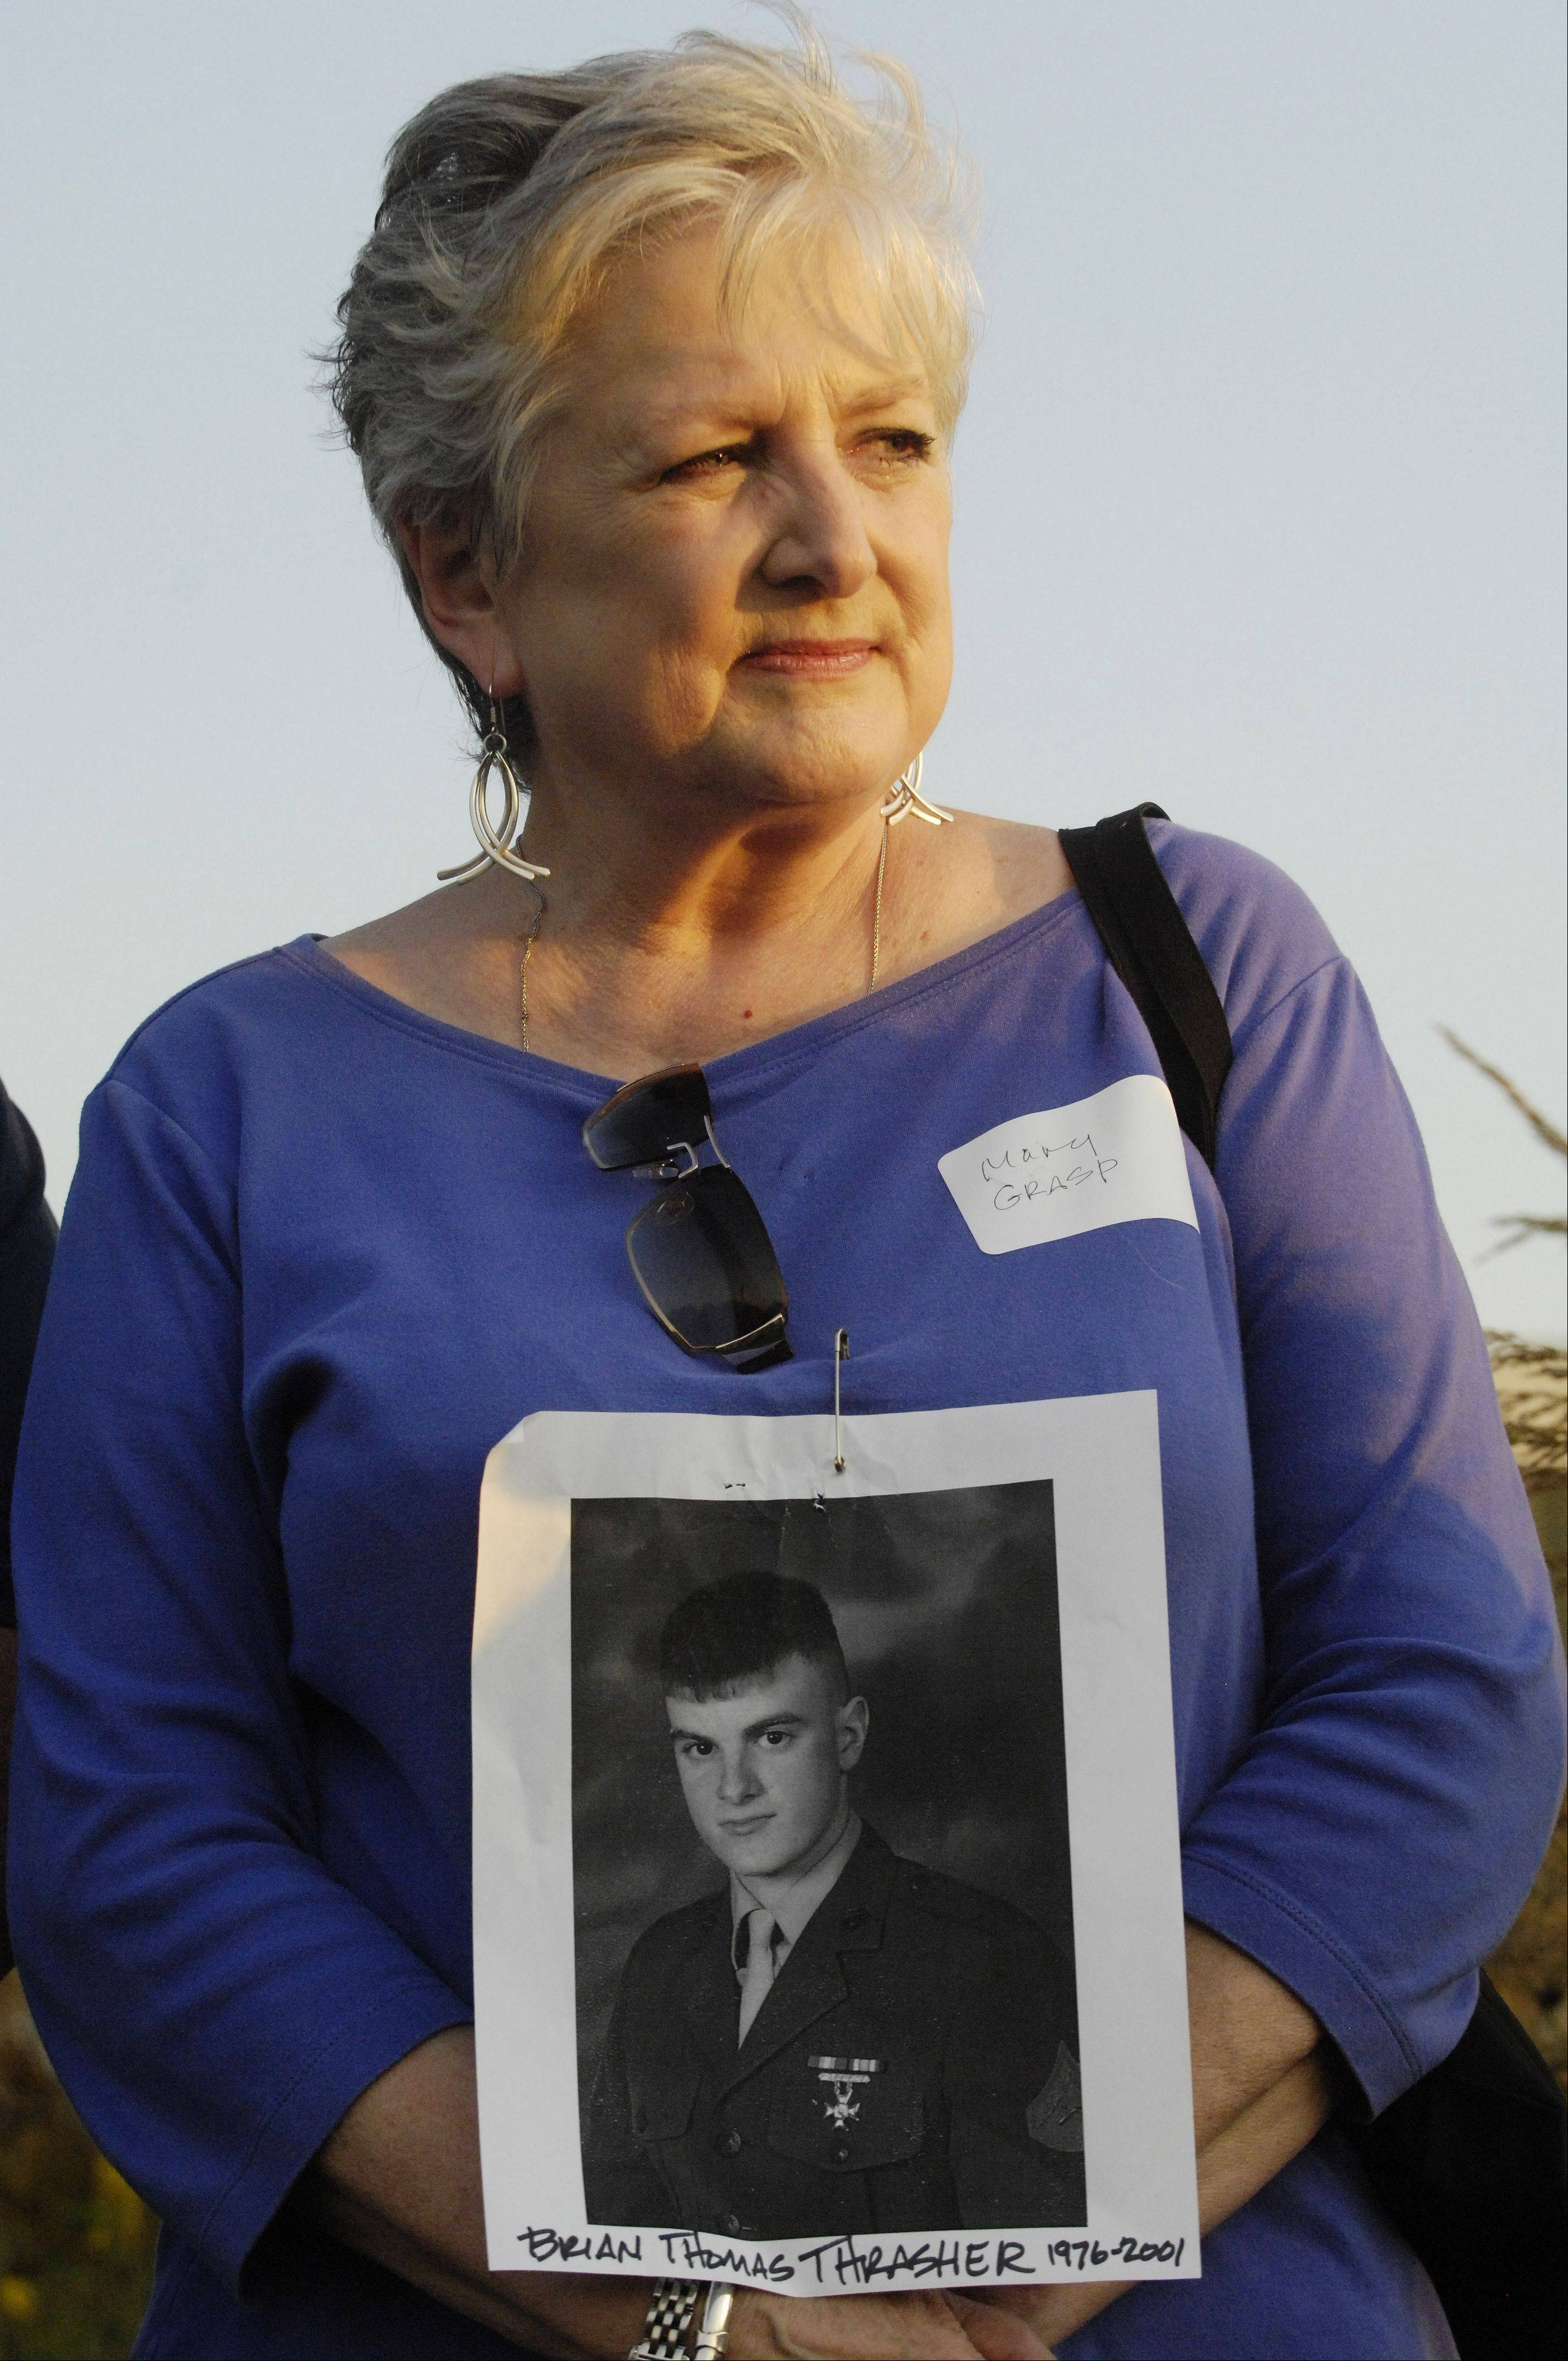 JOE LEWNARD/jlewnard@dailyherald.comMary Thrasher of Palatine holds a portrait of her son, Brian Thomas Thrasher, during a candlelight vigil and remembrance ceremony Thursday at Roosevelt University in Schaumburg. He died of a heroin overdose at age 25.